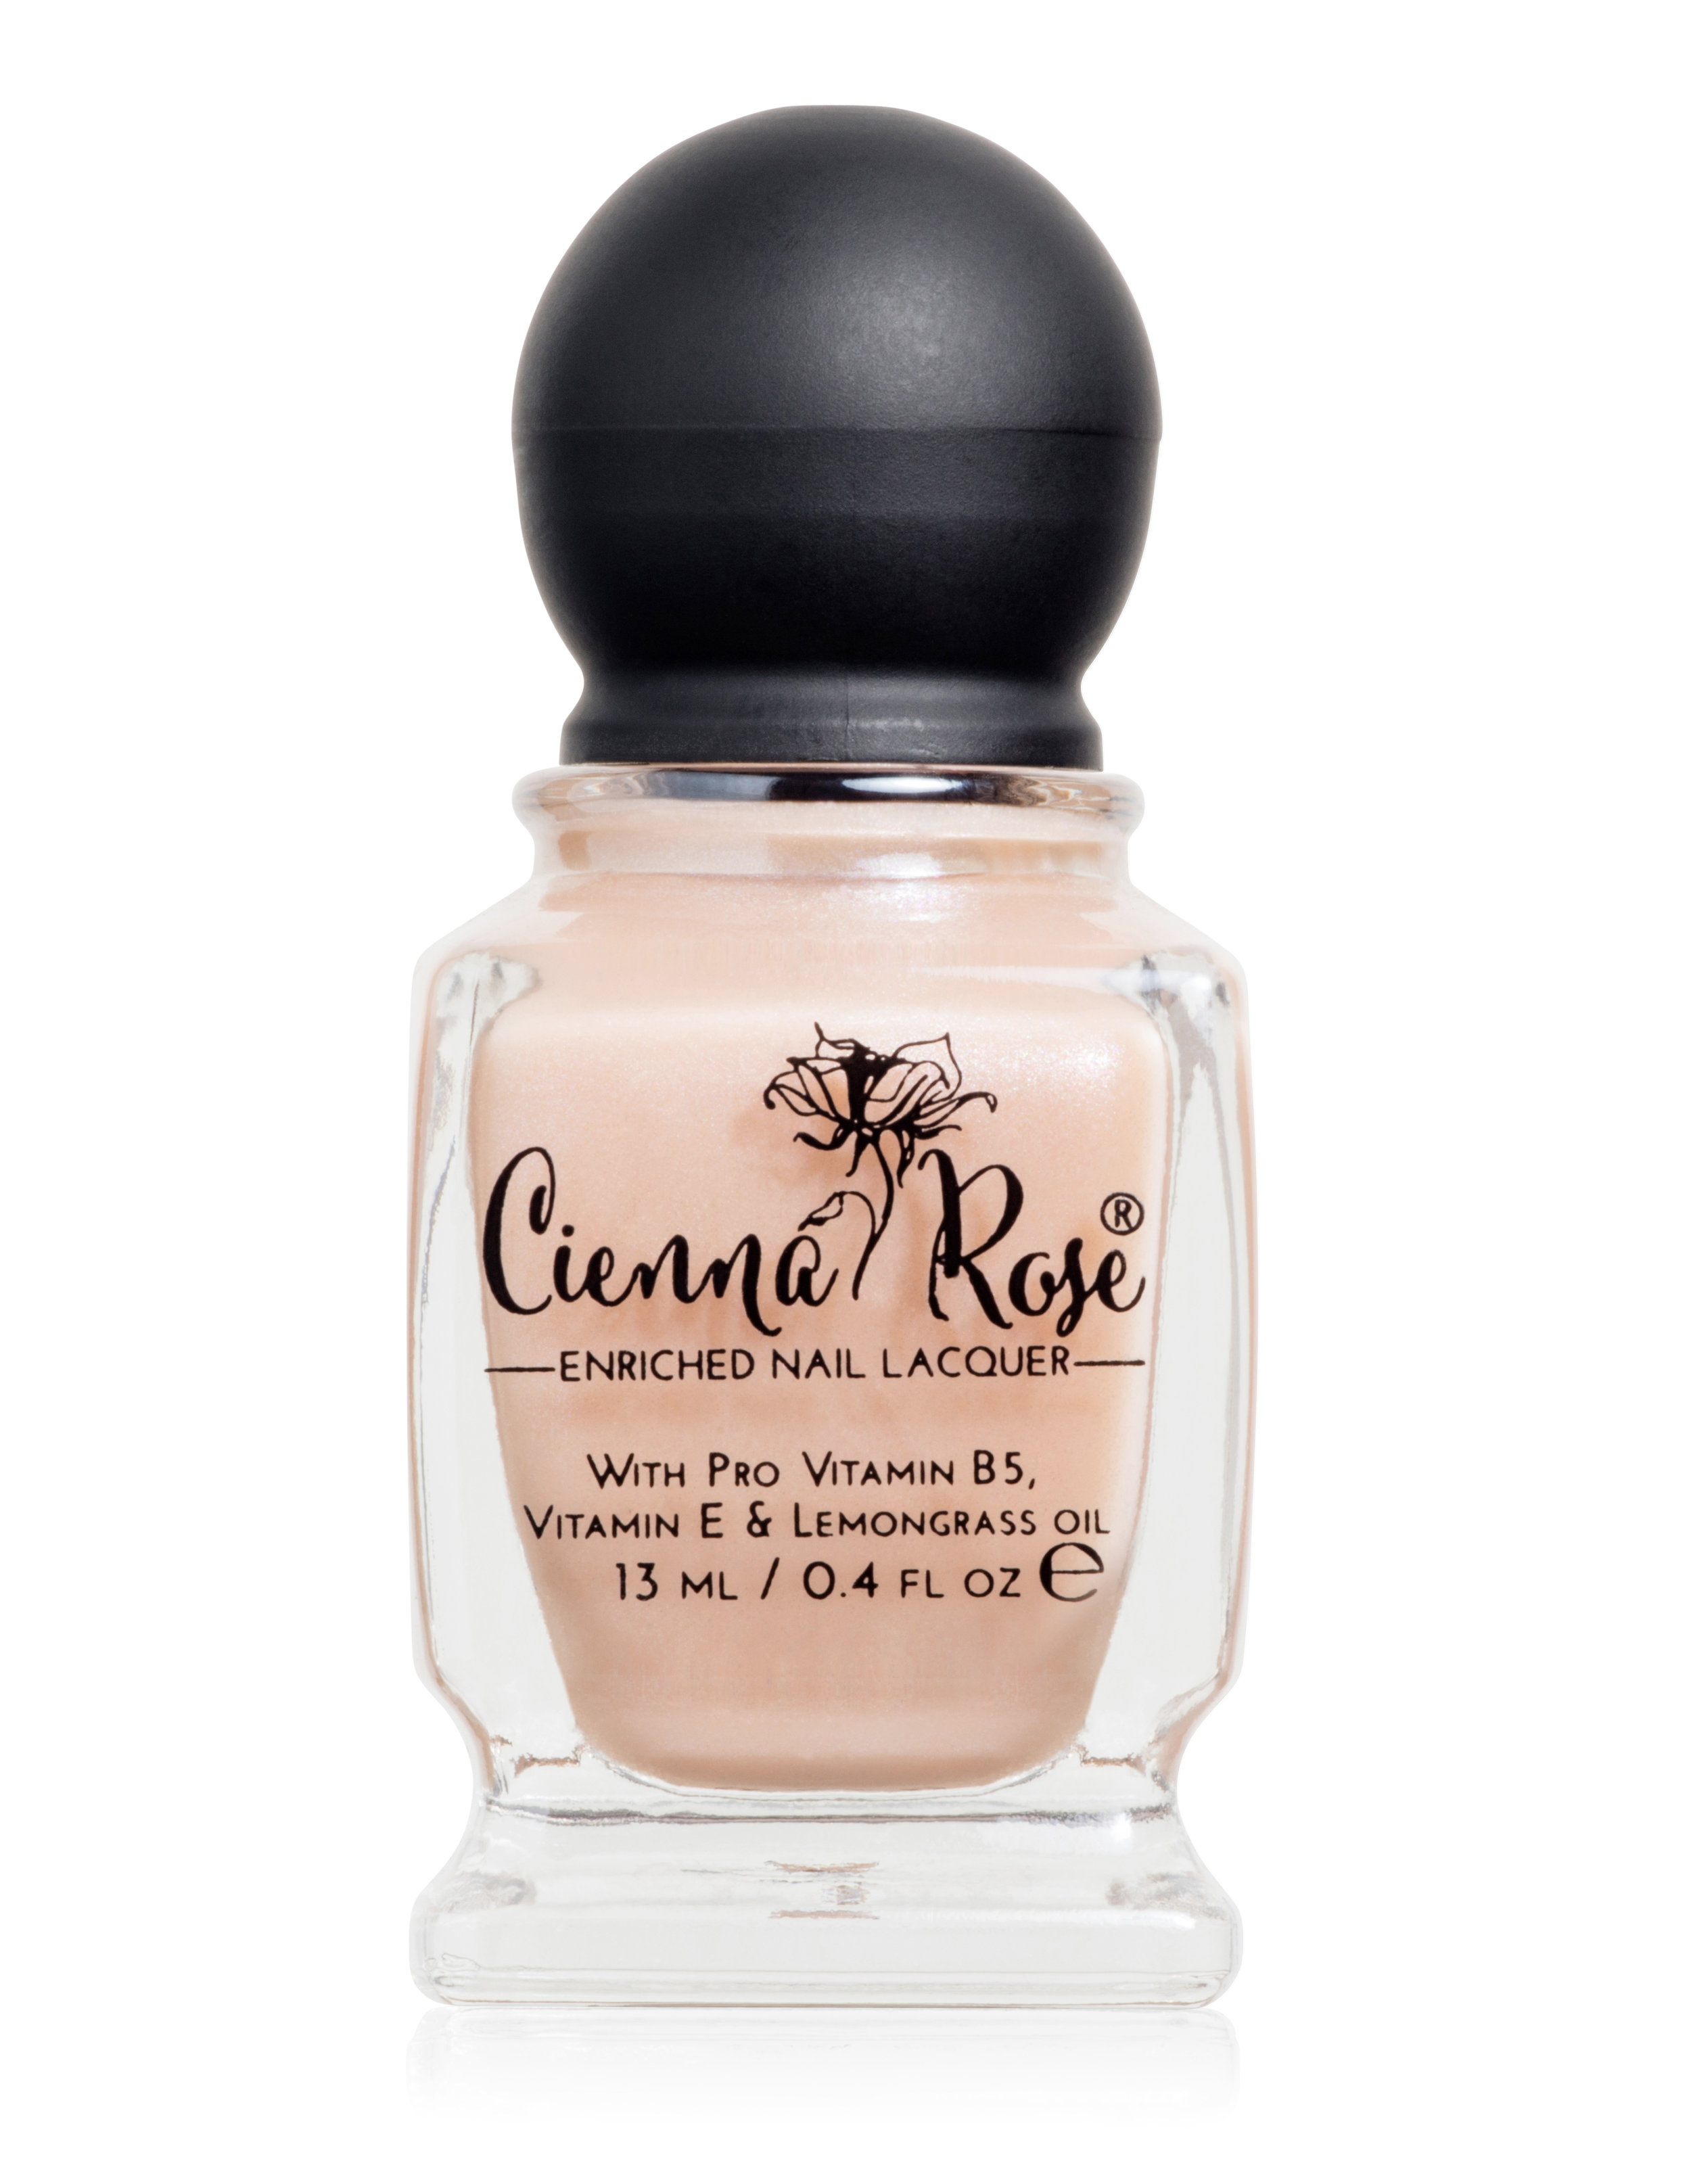 CIENNA ROSE NAIL LACQUER IN OFF THE MARKET REVIEW.jpg